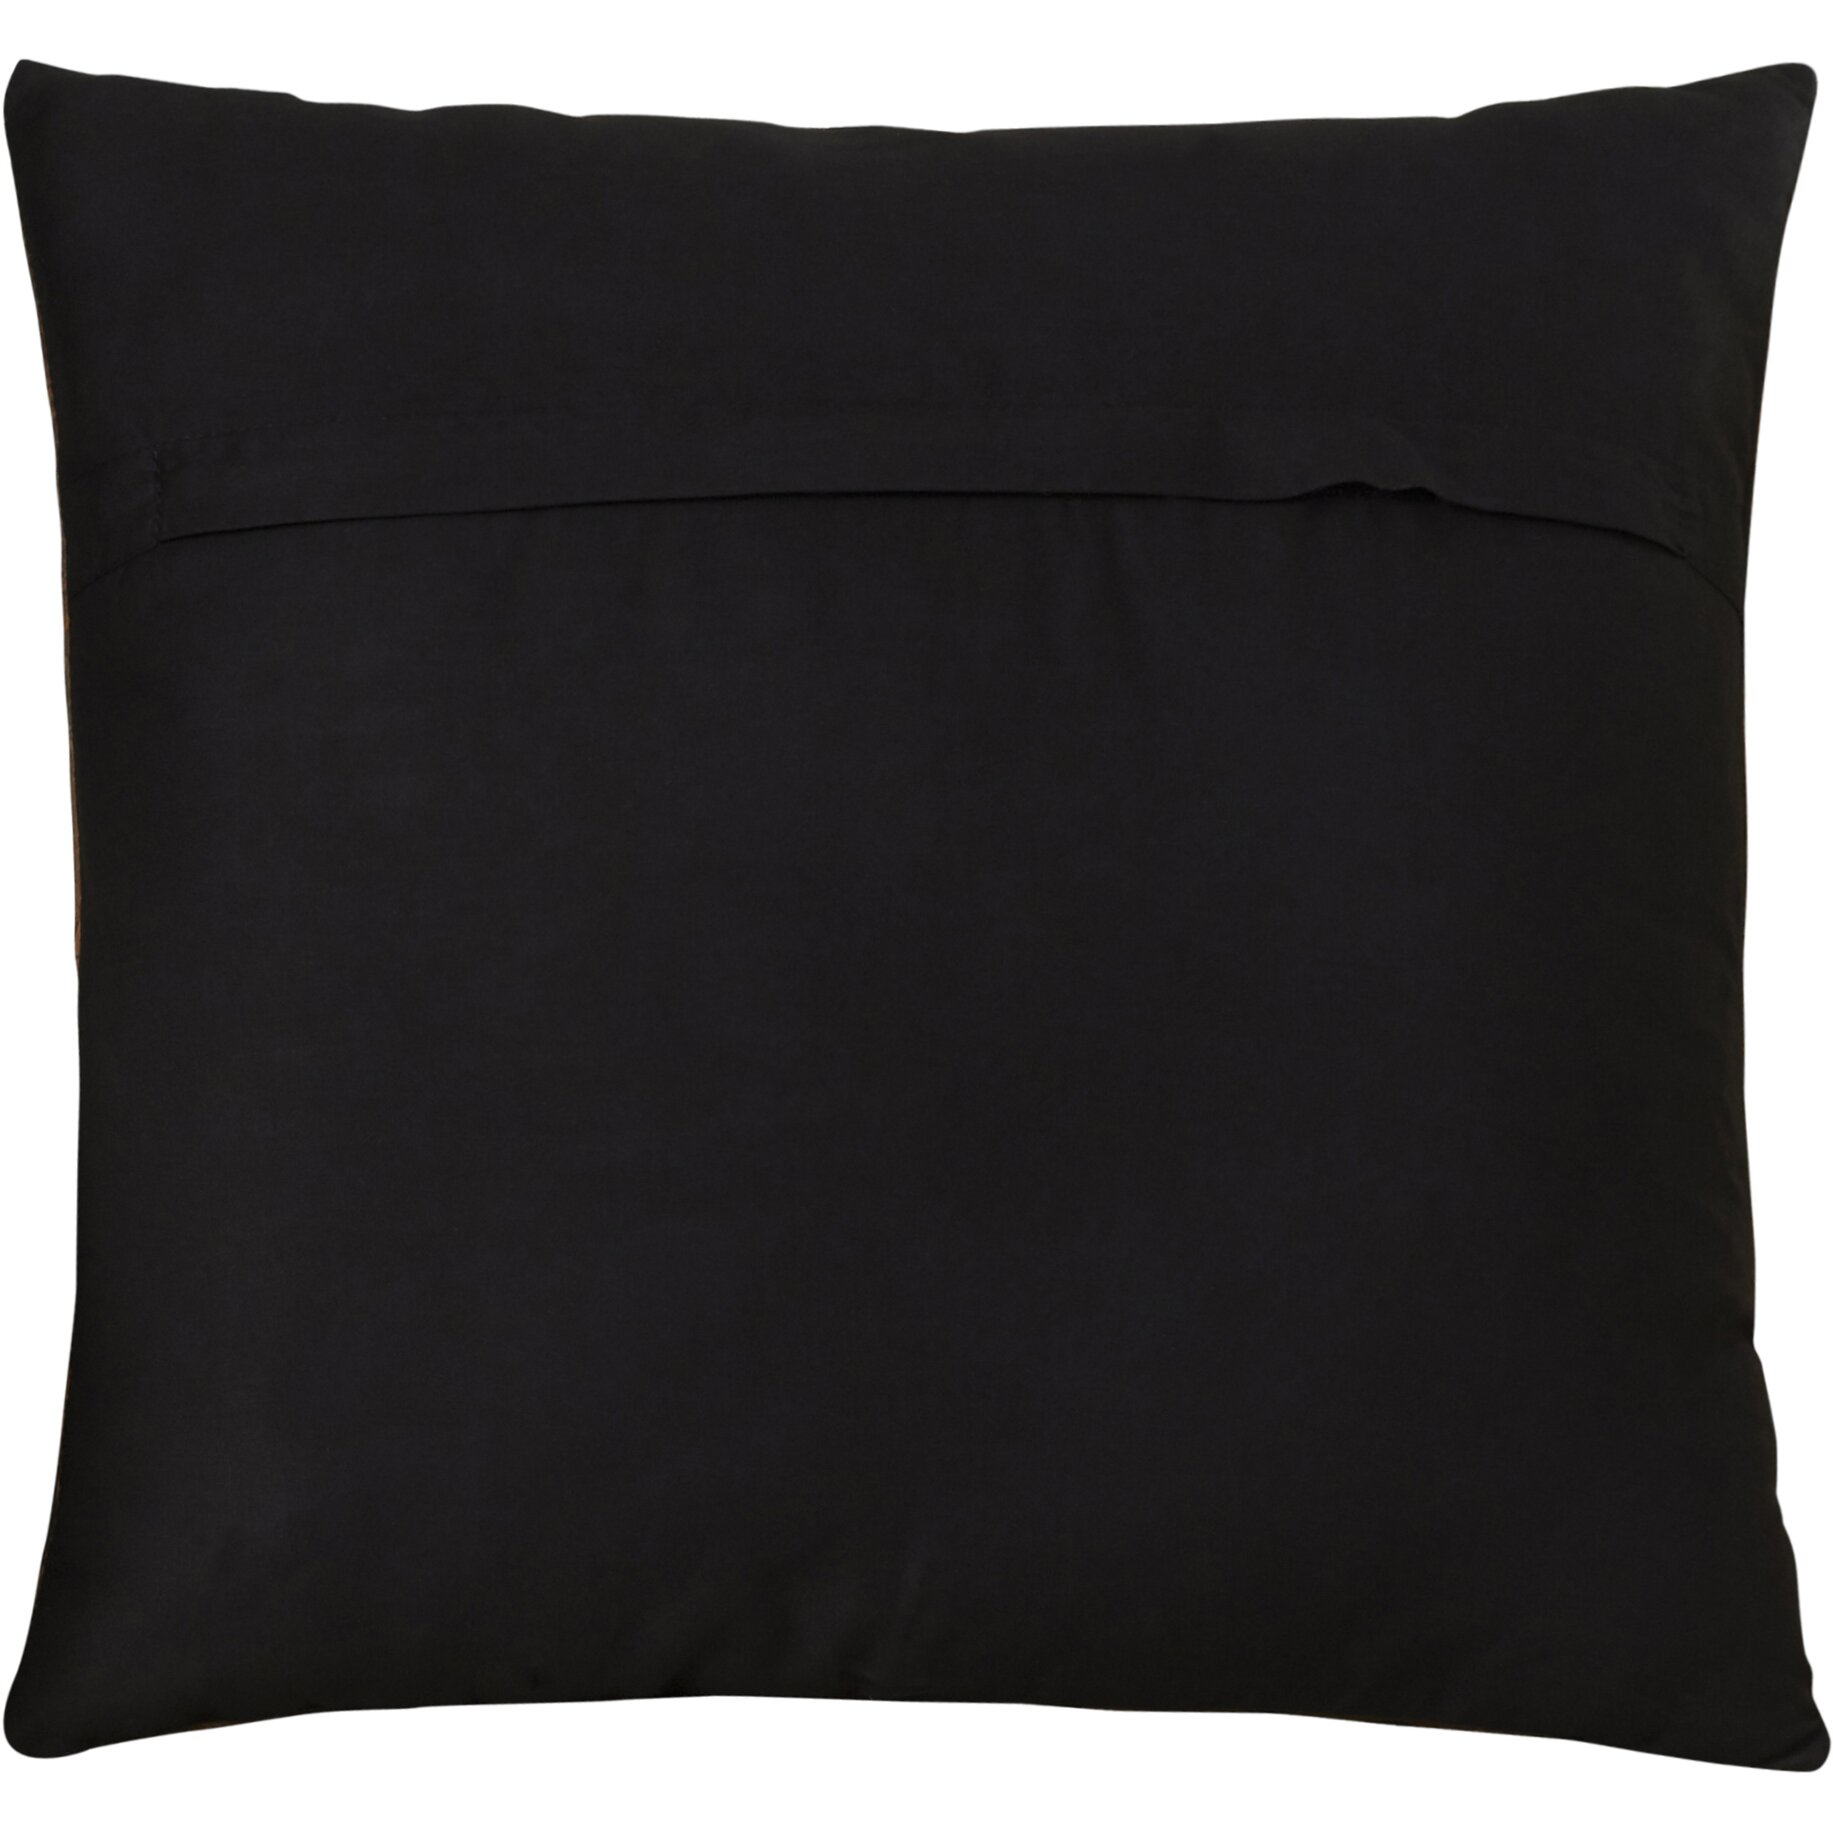 Throw Pillows Faux Leather : Trent Austin Design Dagon Faux Leather Throw Pillow & Reviews Wayfair.ca